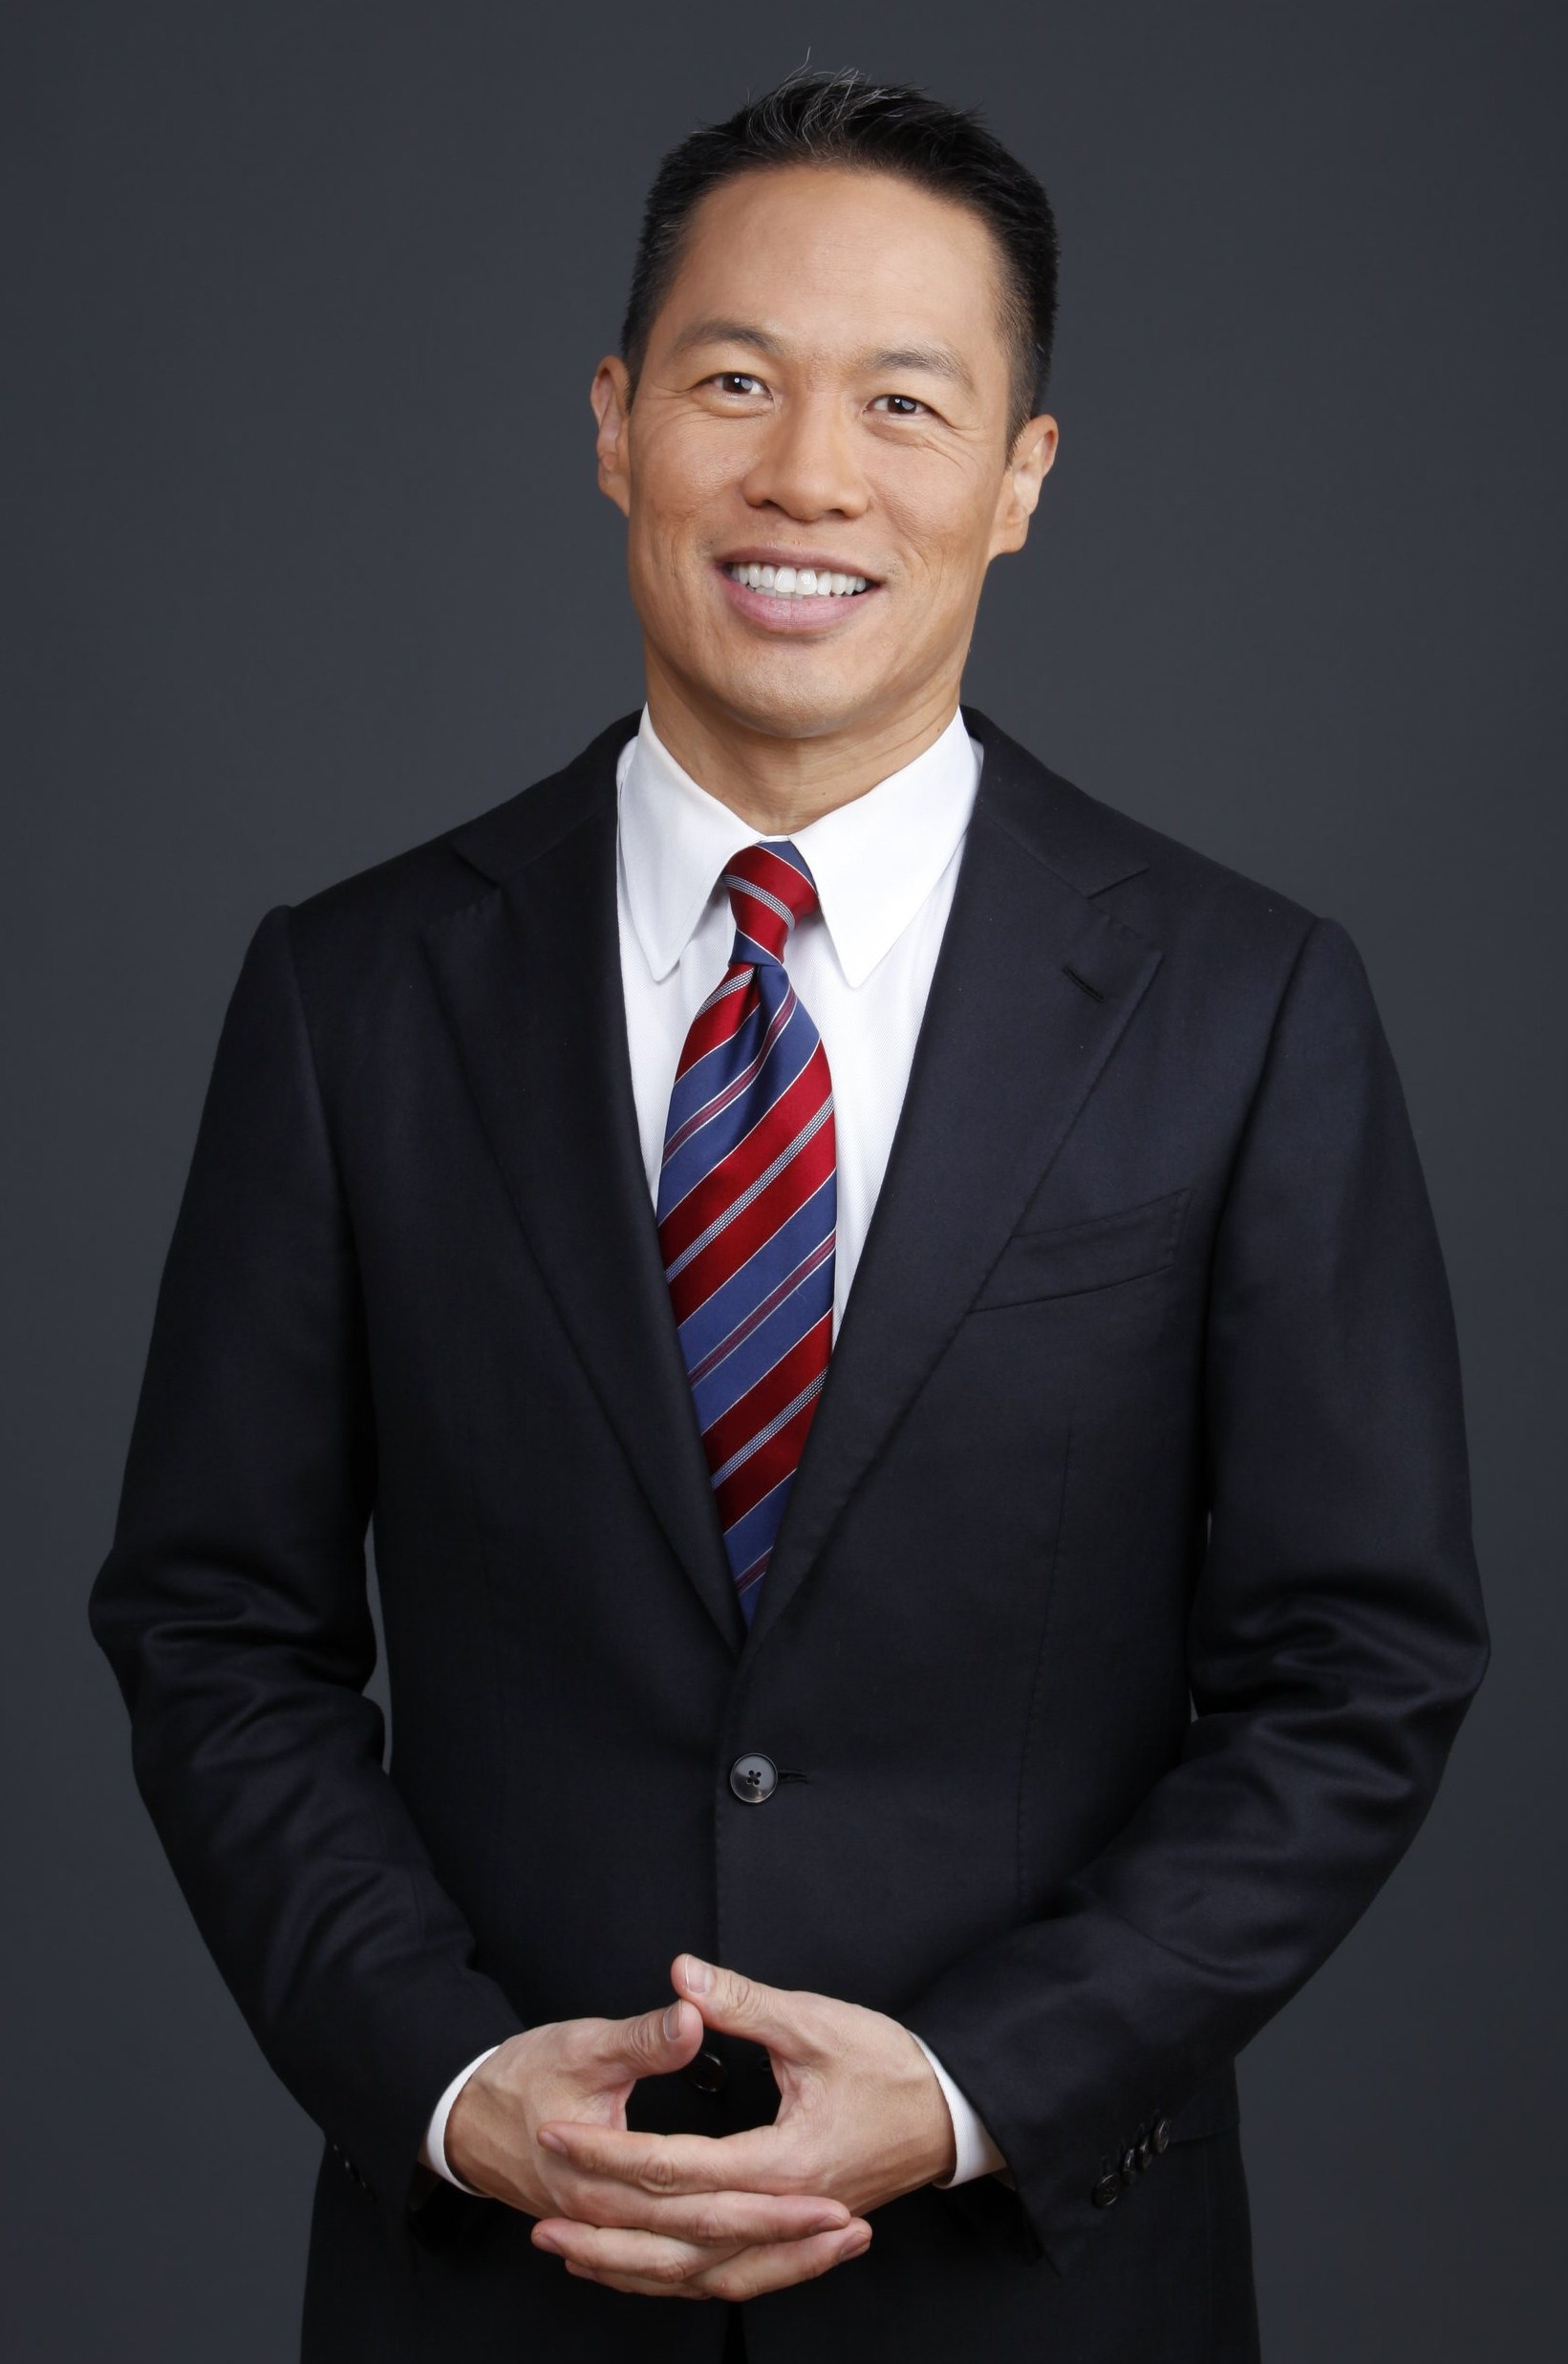 Richard Lui, MSNBC News Anchor on FAKE NEWS: cyberwarfare's cousin is more than misinformation